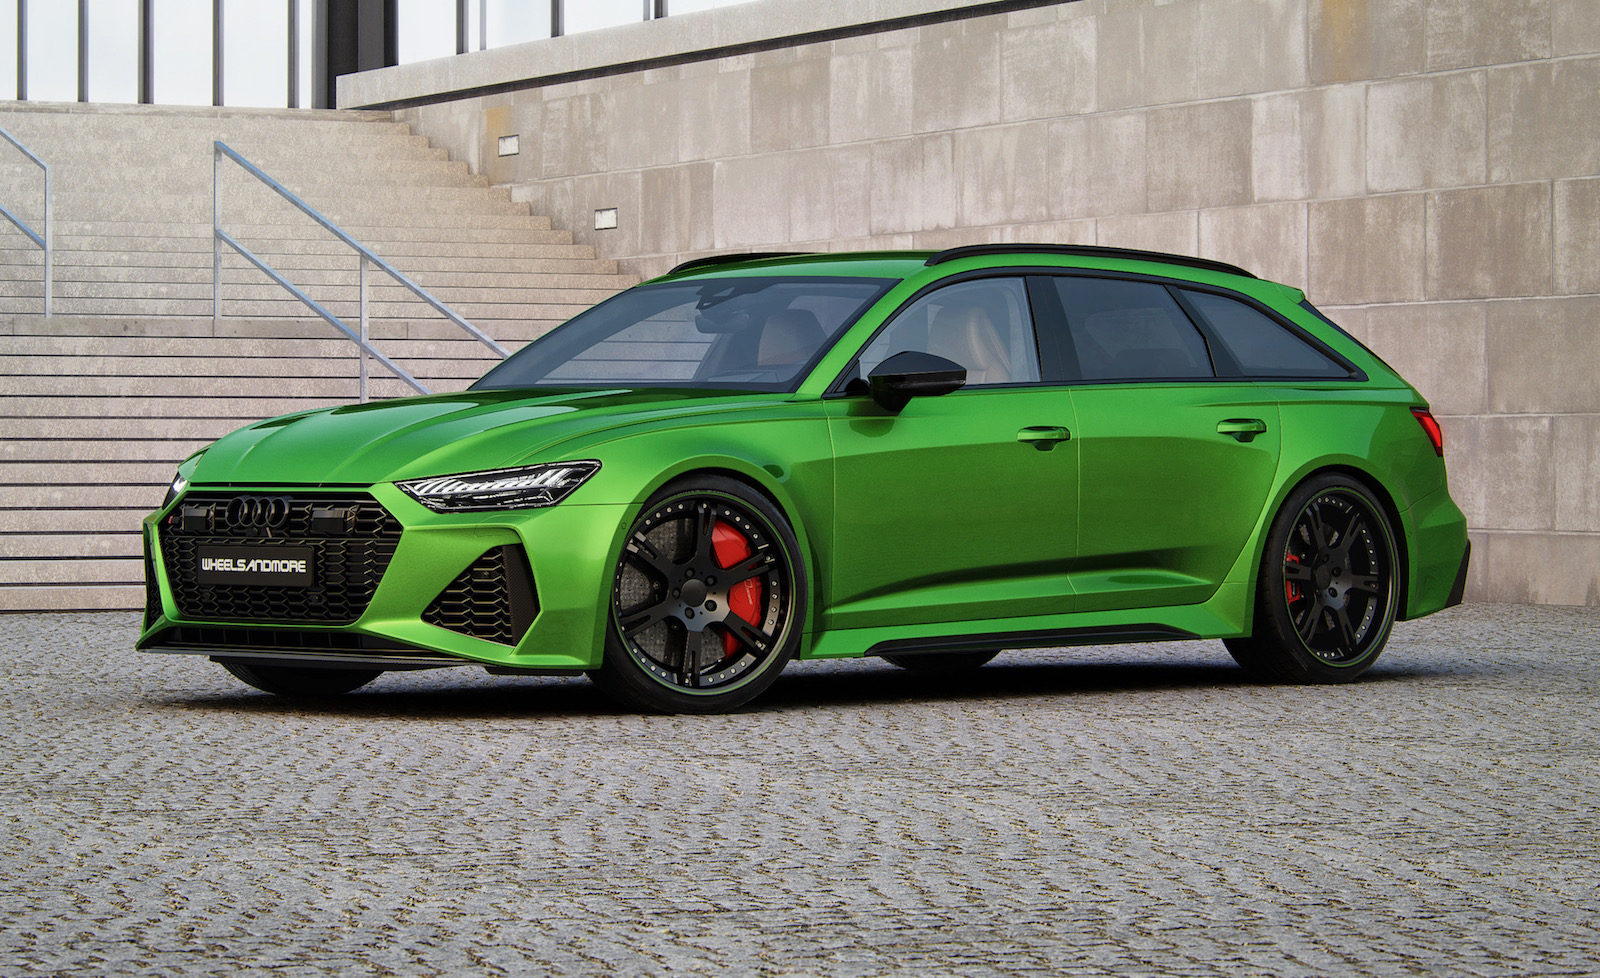 Wheelsandmore Goes Nuts With 2021 Audi Rs 6 Avant Up To 1000hp Performancedrive